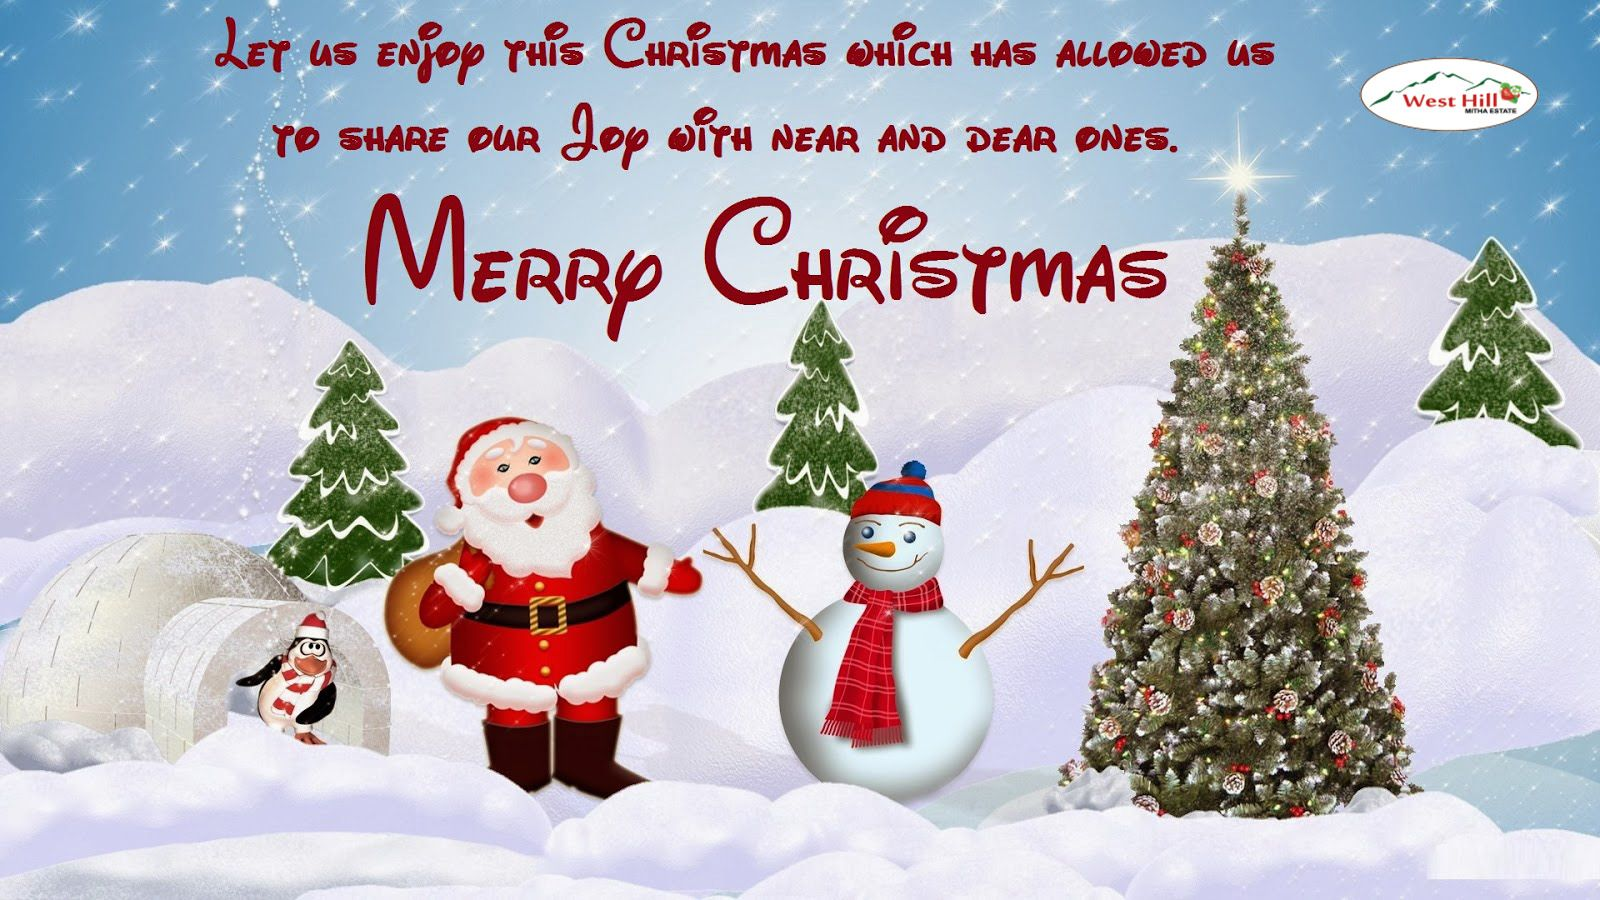 The merry christmas greeting picture and status message help in the merry christmas greeting picture and status message help in wishing each and every family member and friends description from wittystory kristyandbryce Choice Image